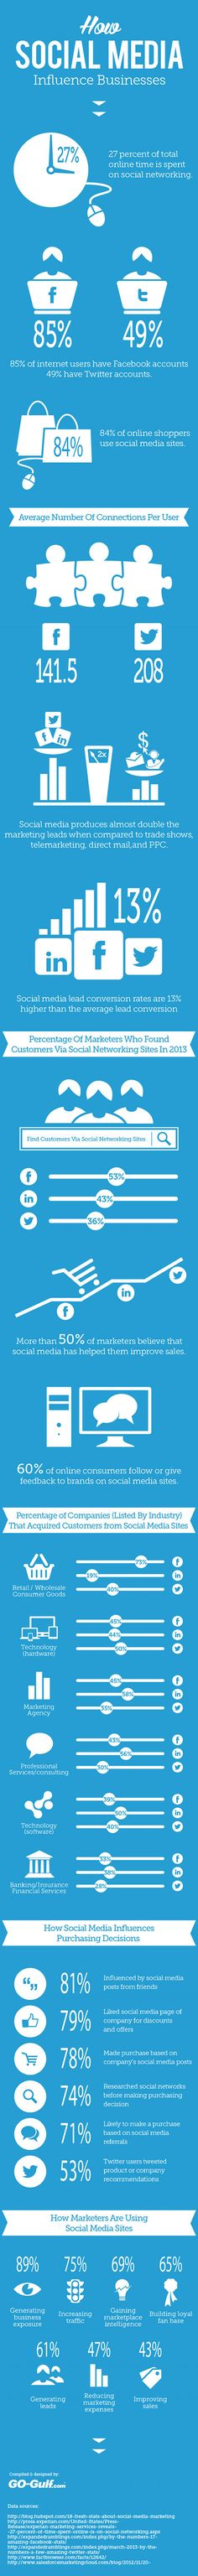 How Social Media influenced B2B #infographic www.socialmediamamma.com